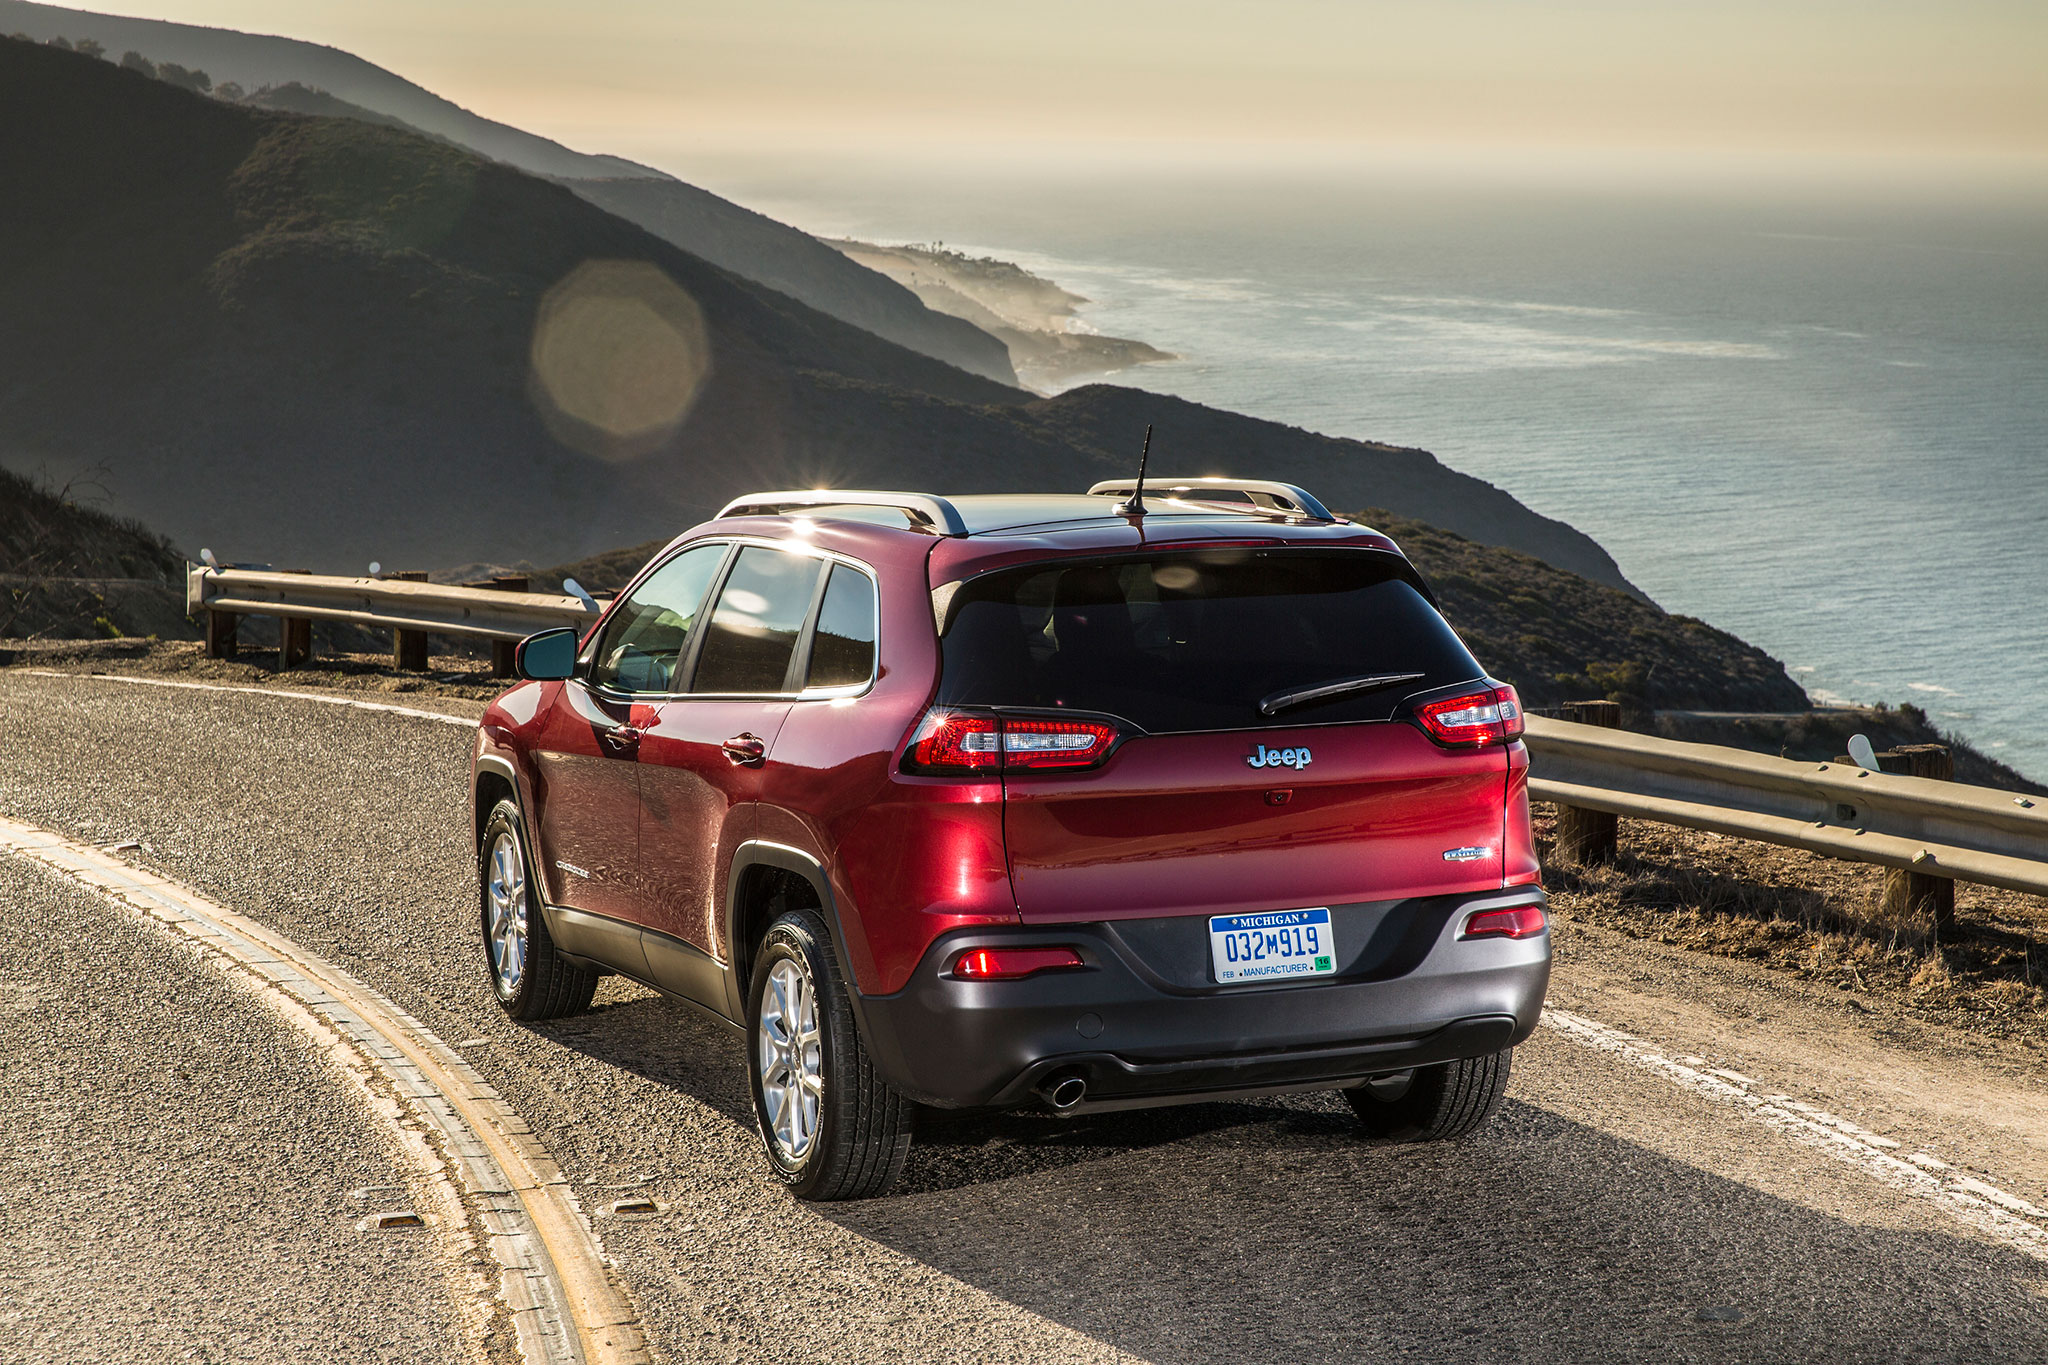 2014 Jeep Cherokee Not Recommended by Consumer Reports ...